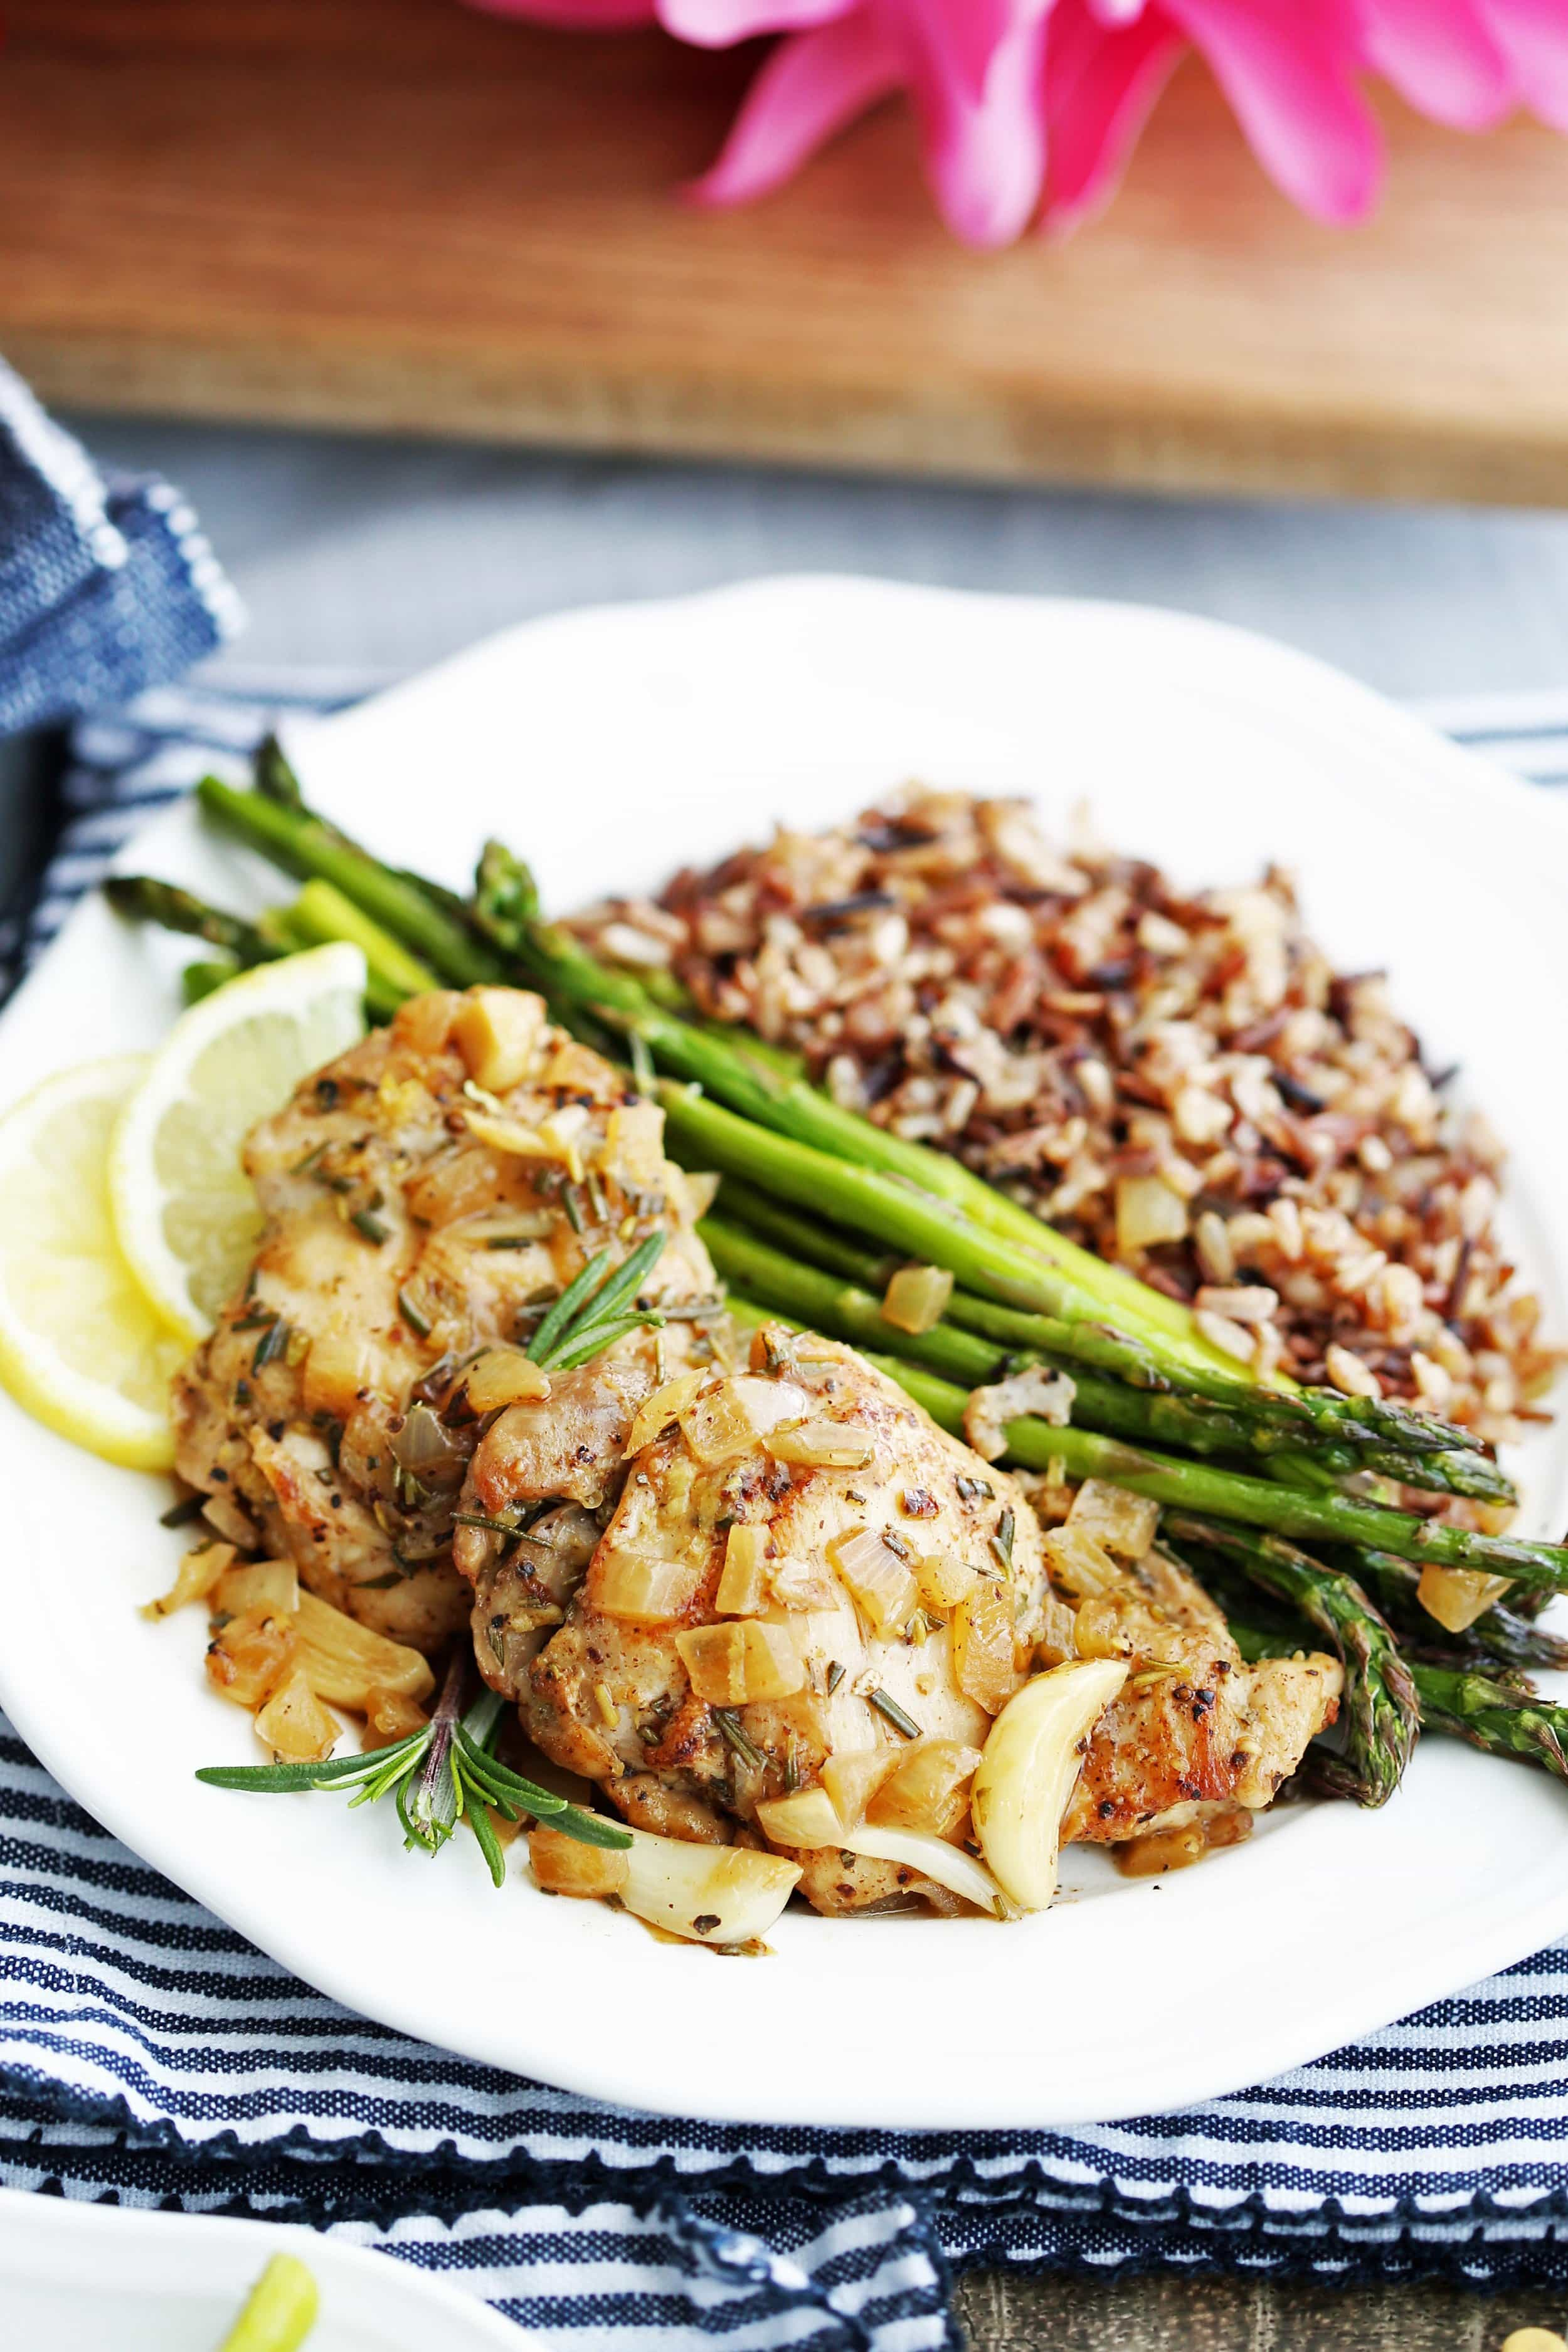 Two rosemary garlic chicken thighs, roasted asparagus, and wild rice on a white plate.